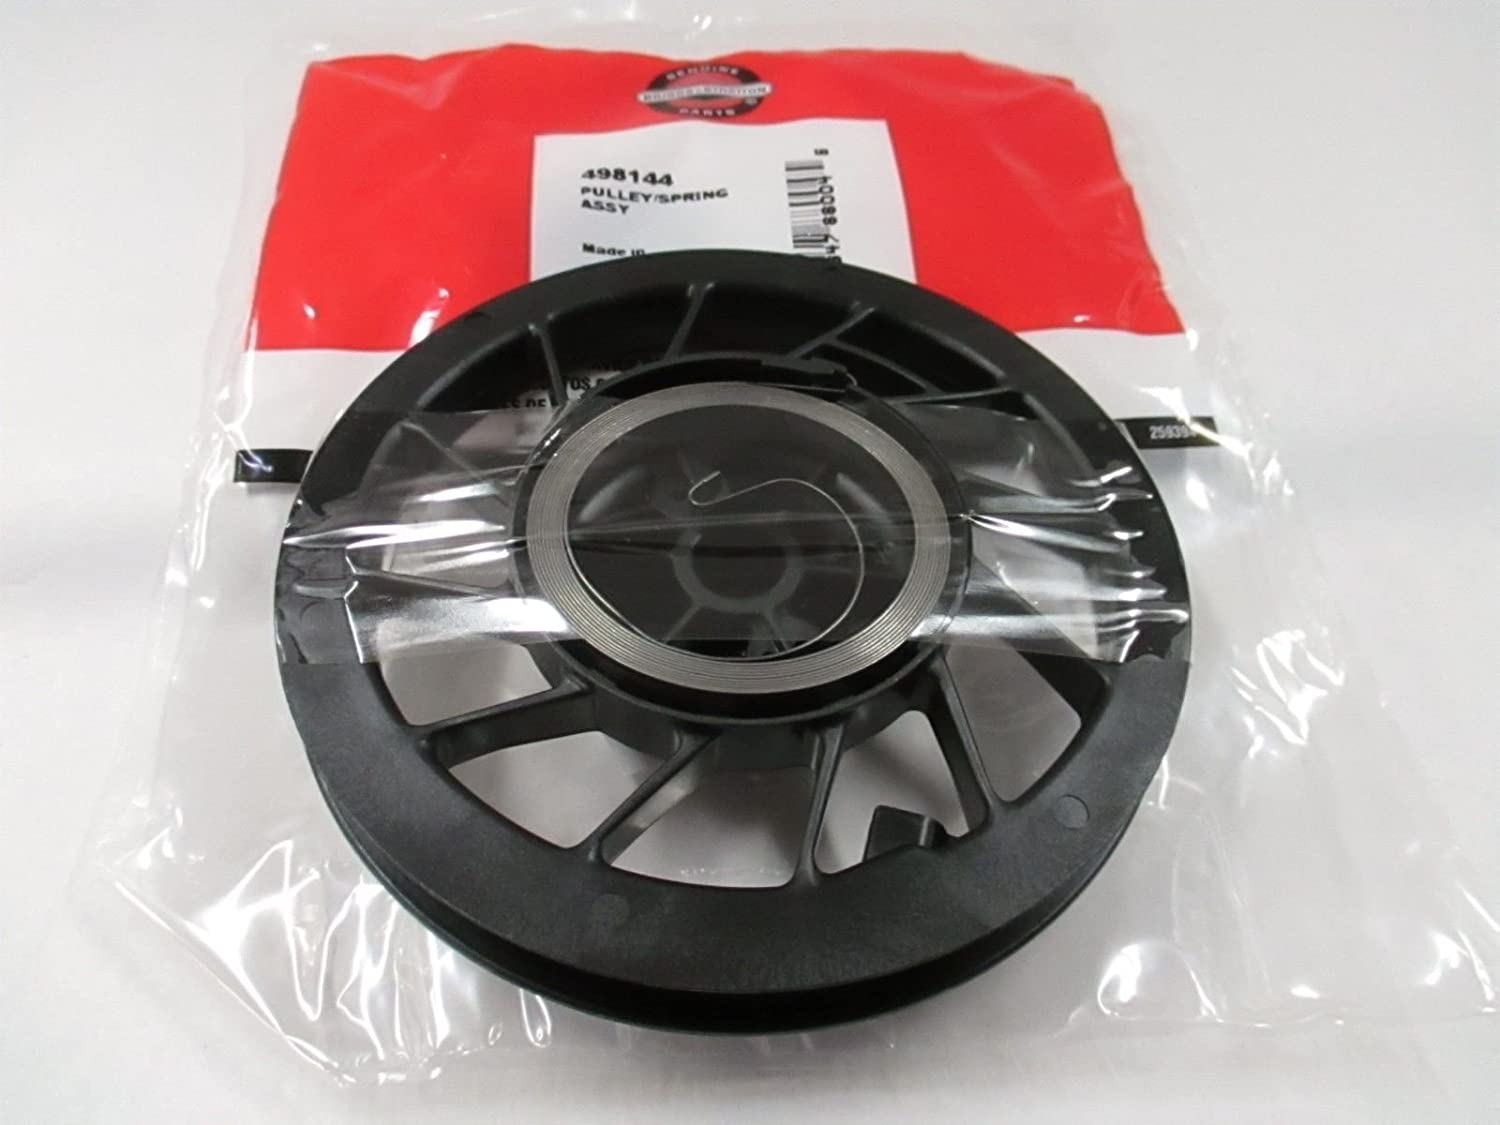 Lawnmowers Parts Genuine OEM Briggs /& Stratton 498144/Recoil Starter Pulley /& Spring